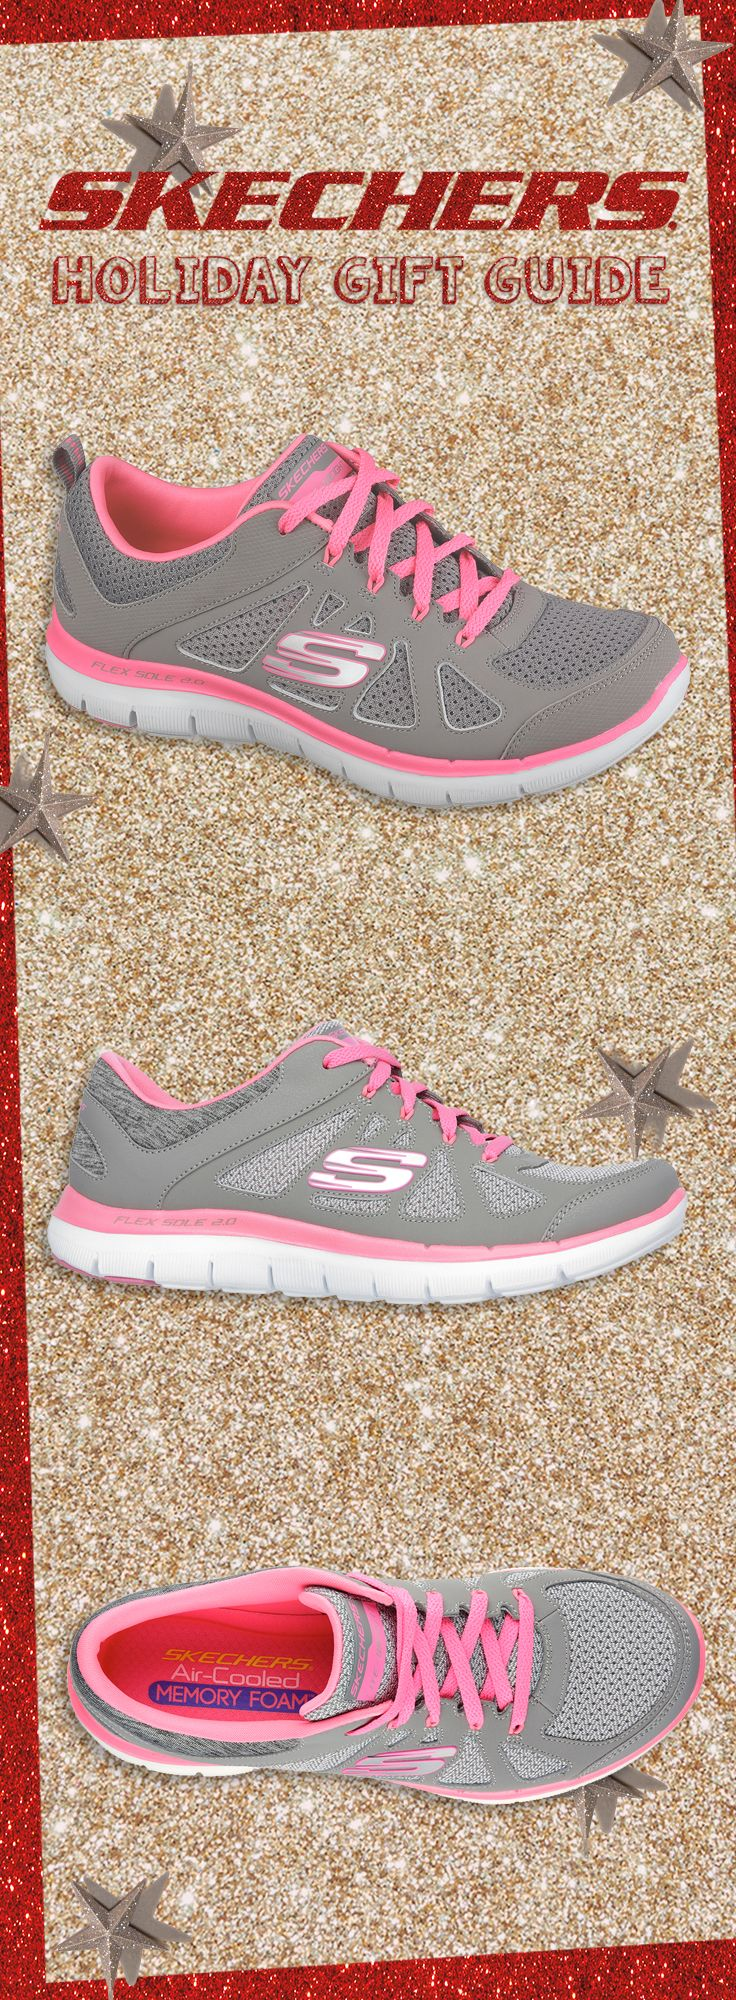 Make your holiday workout better wearing our Flex Appeal 2.0 - Simplistic. #SKECHERSholiday